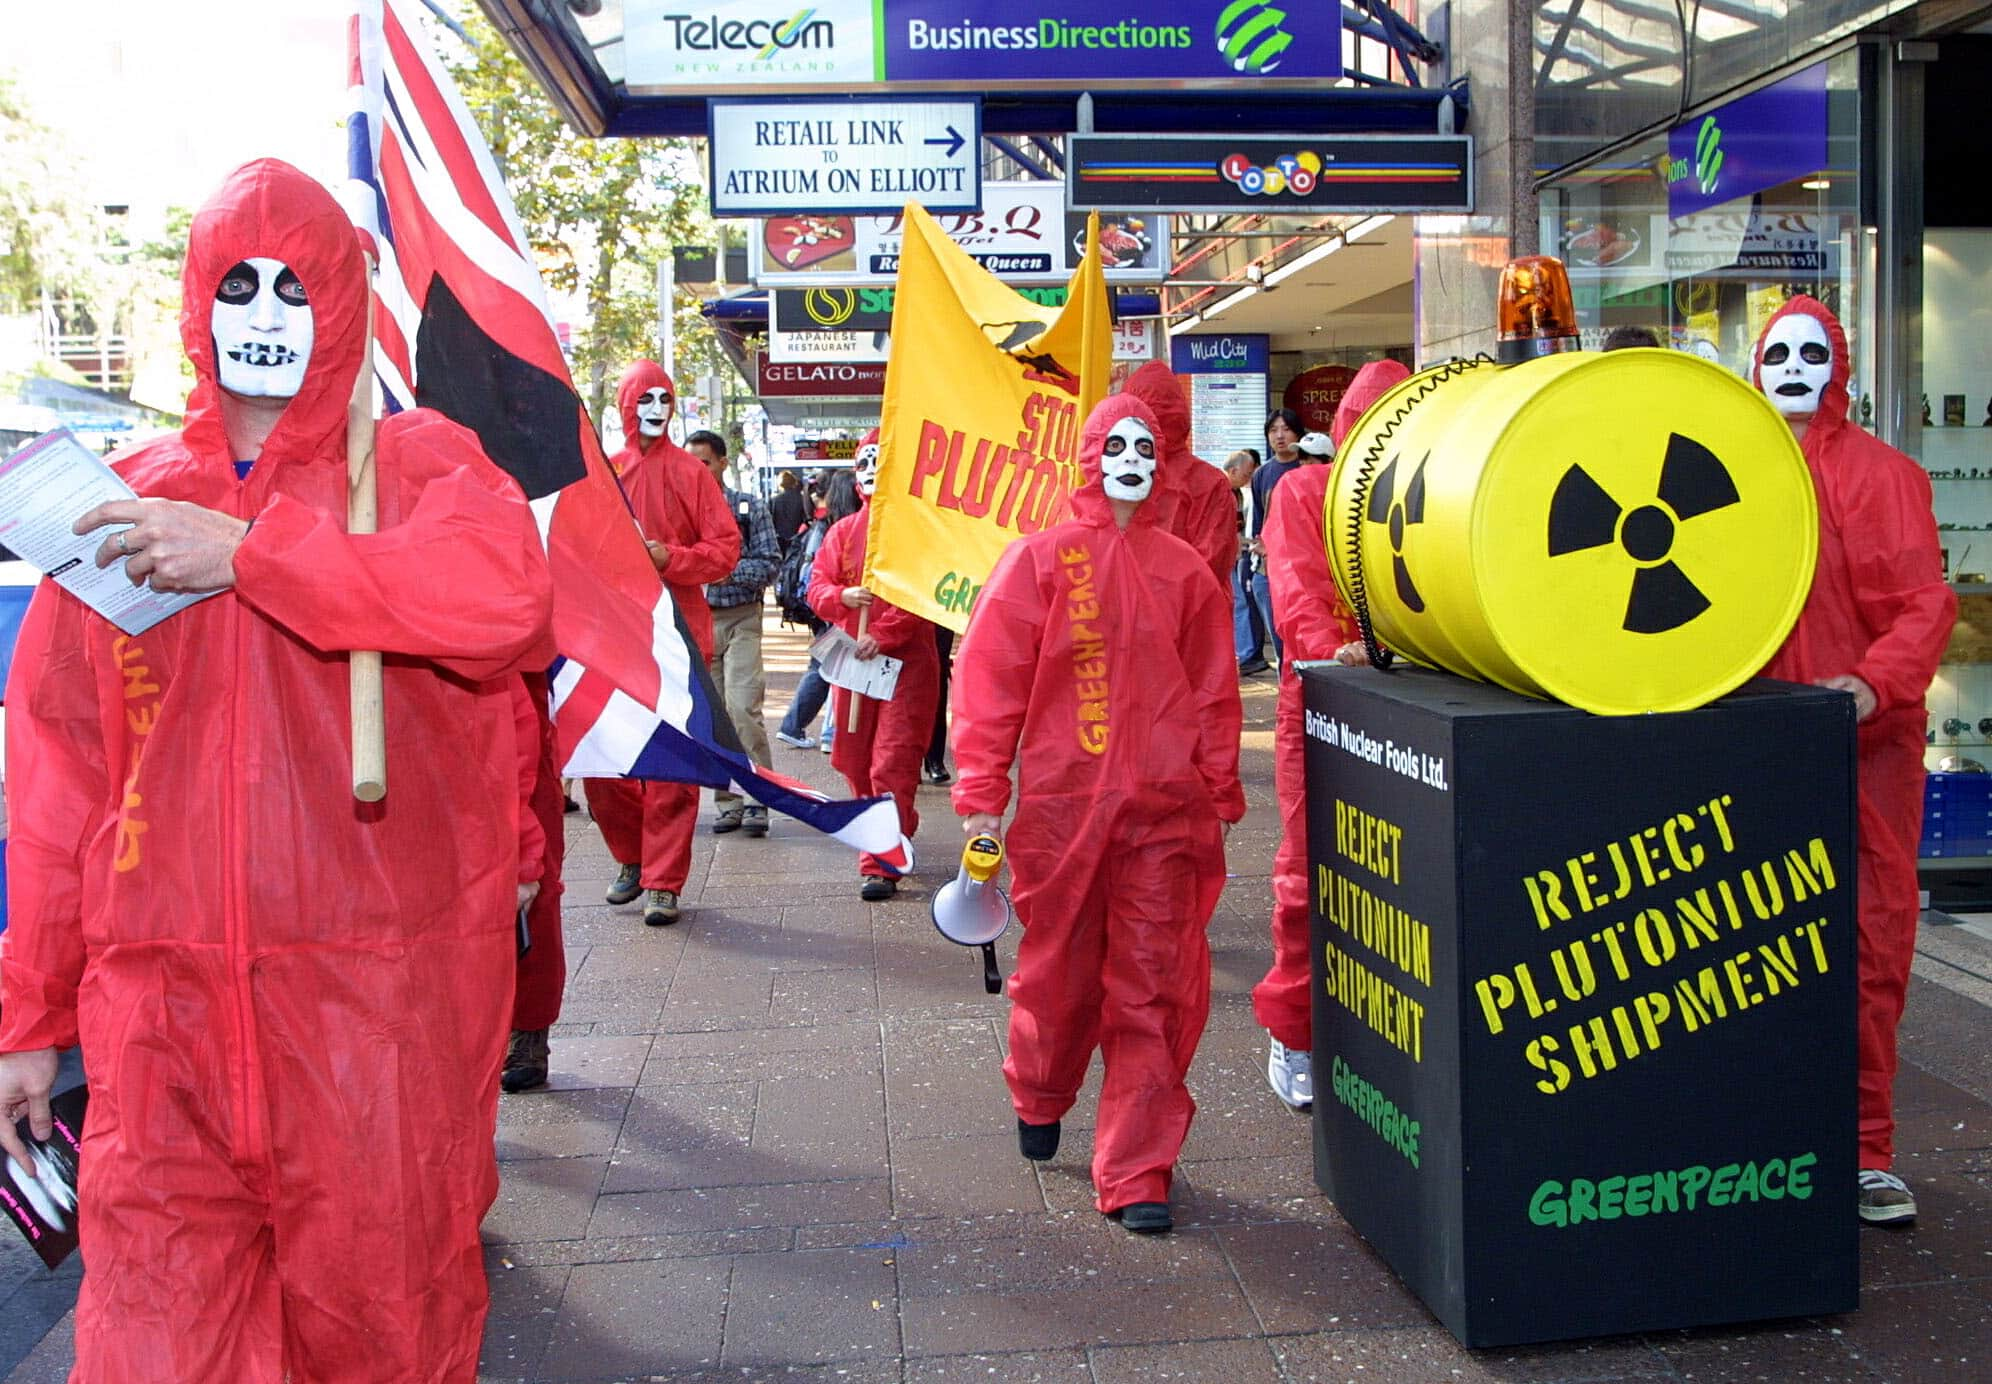 Greenpeace activists march down Queen Street on their way to the British Consul Generals offices to deliver a letter opposing the imminent shipment of plutonium from Japan to the UK via the Tasman Sea. (Getty Images)